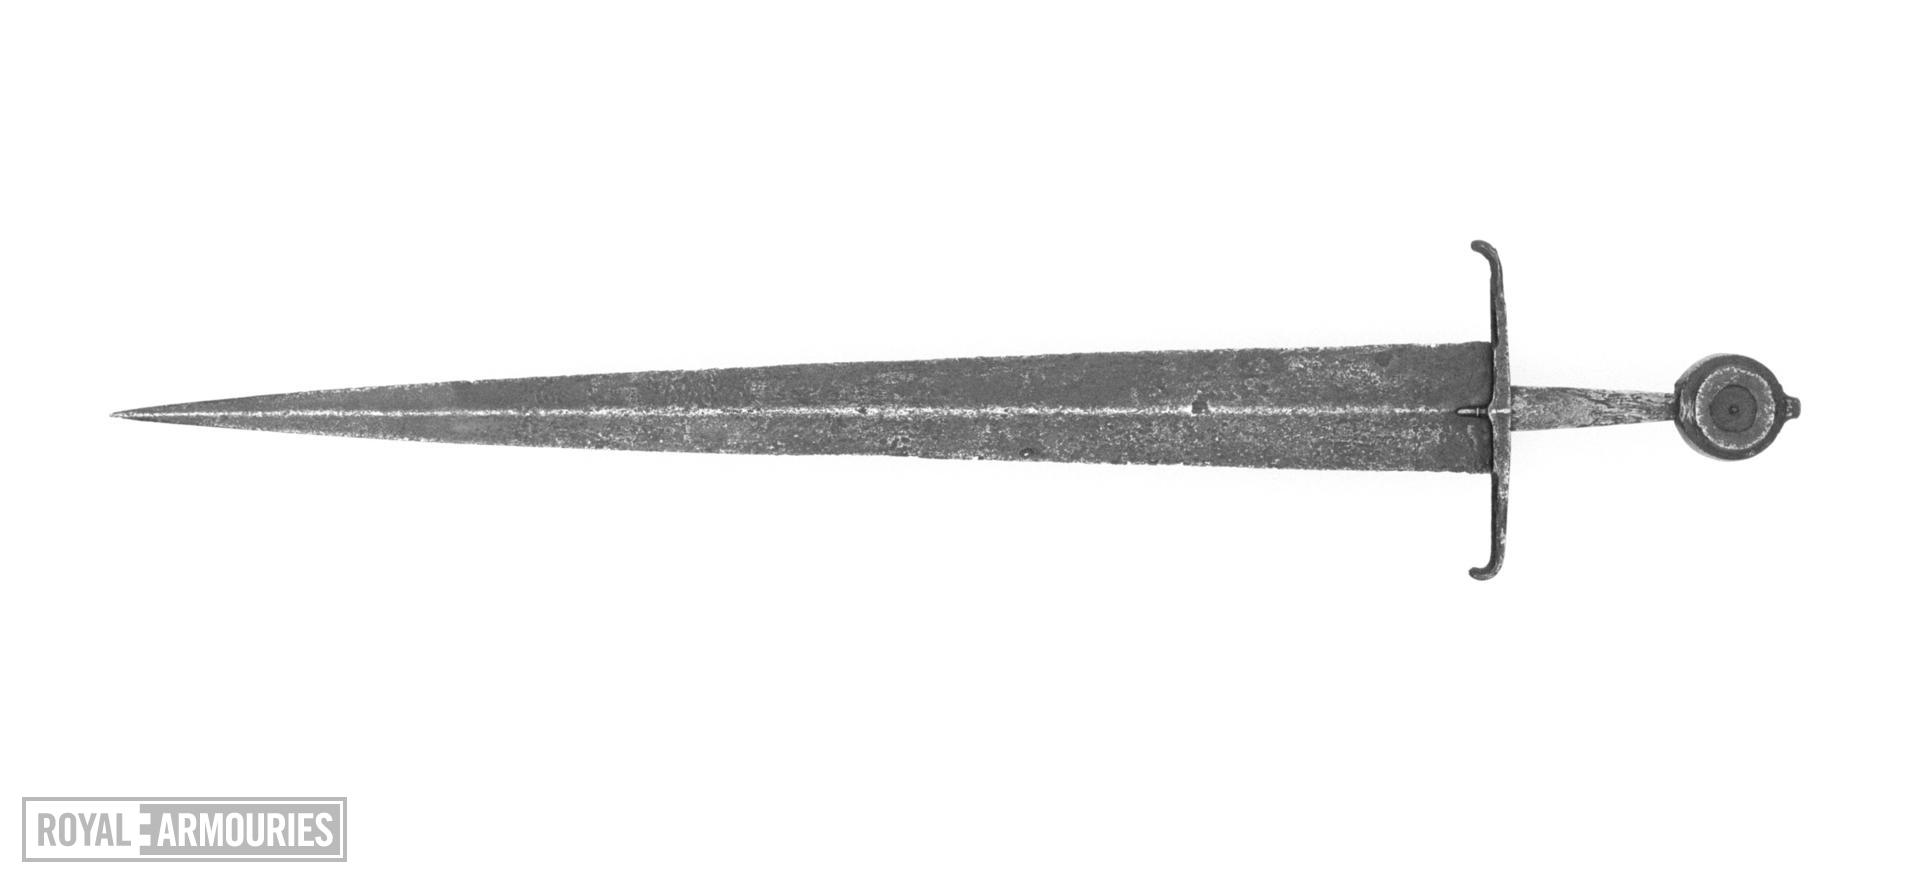 Sword. Possibly English, mid 15th century (IX.3683)